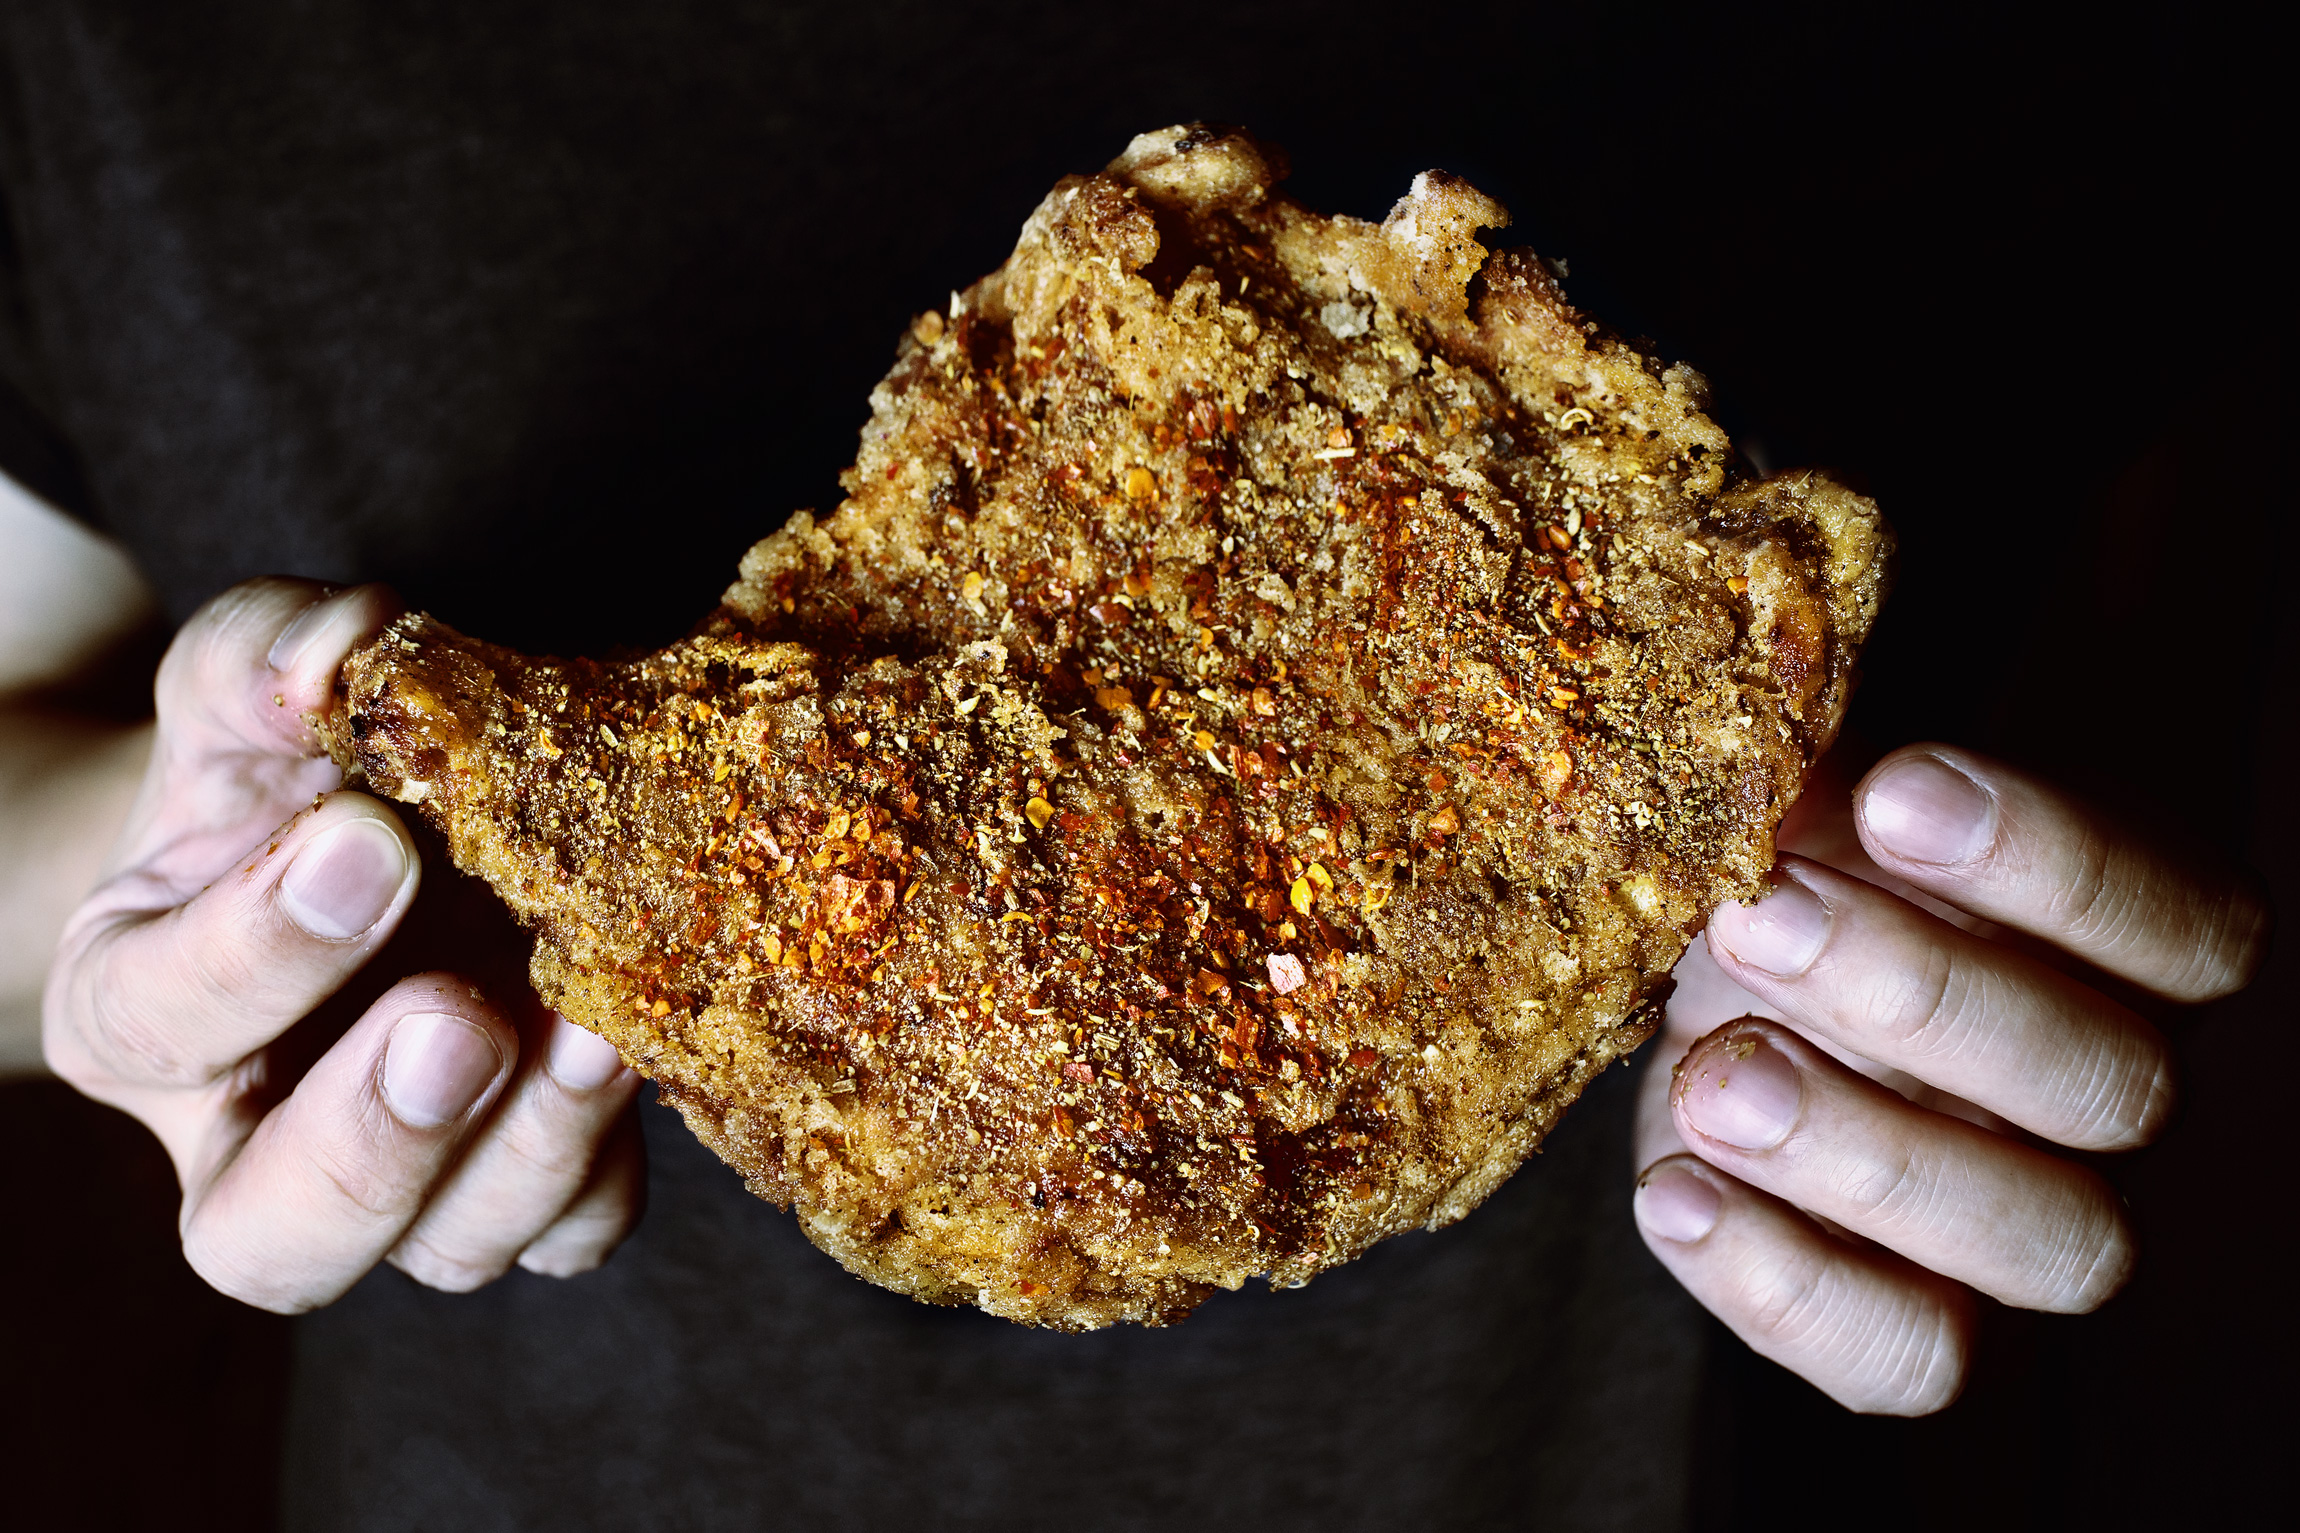 THE PHYSICALLY AND FLAVOR-MASSIVE, BEIJING SUPERMARKET FRIED CHICKEN